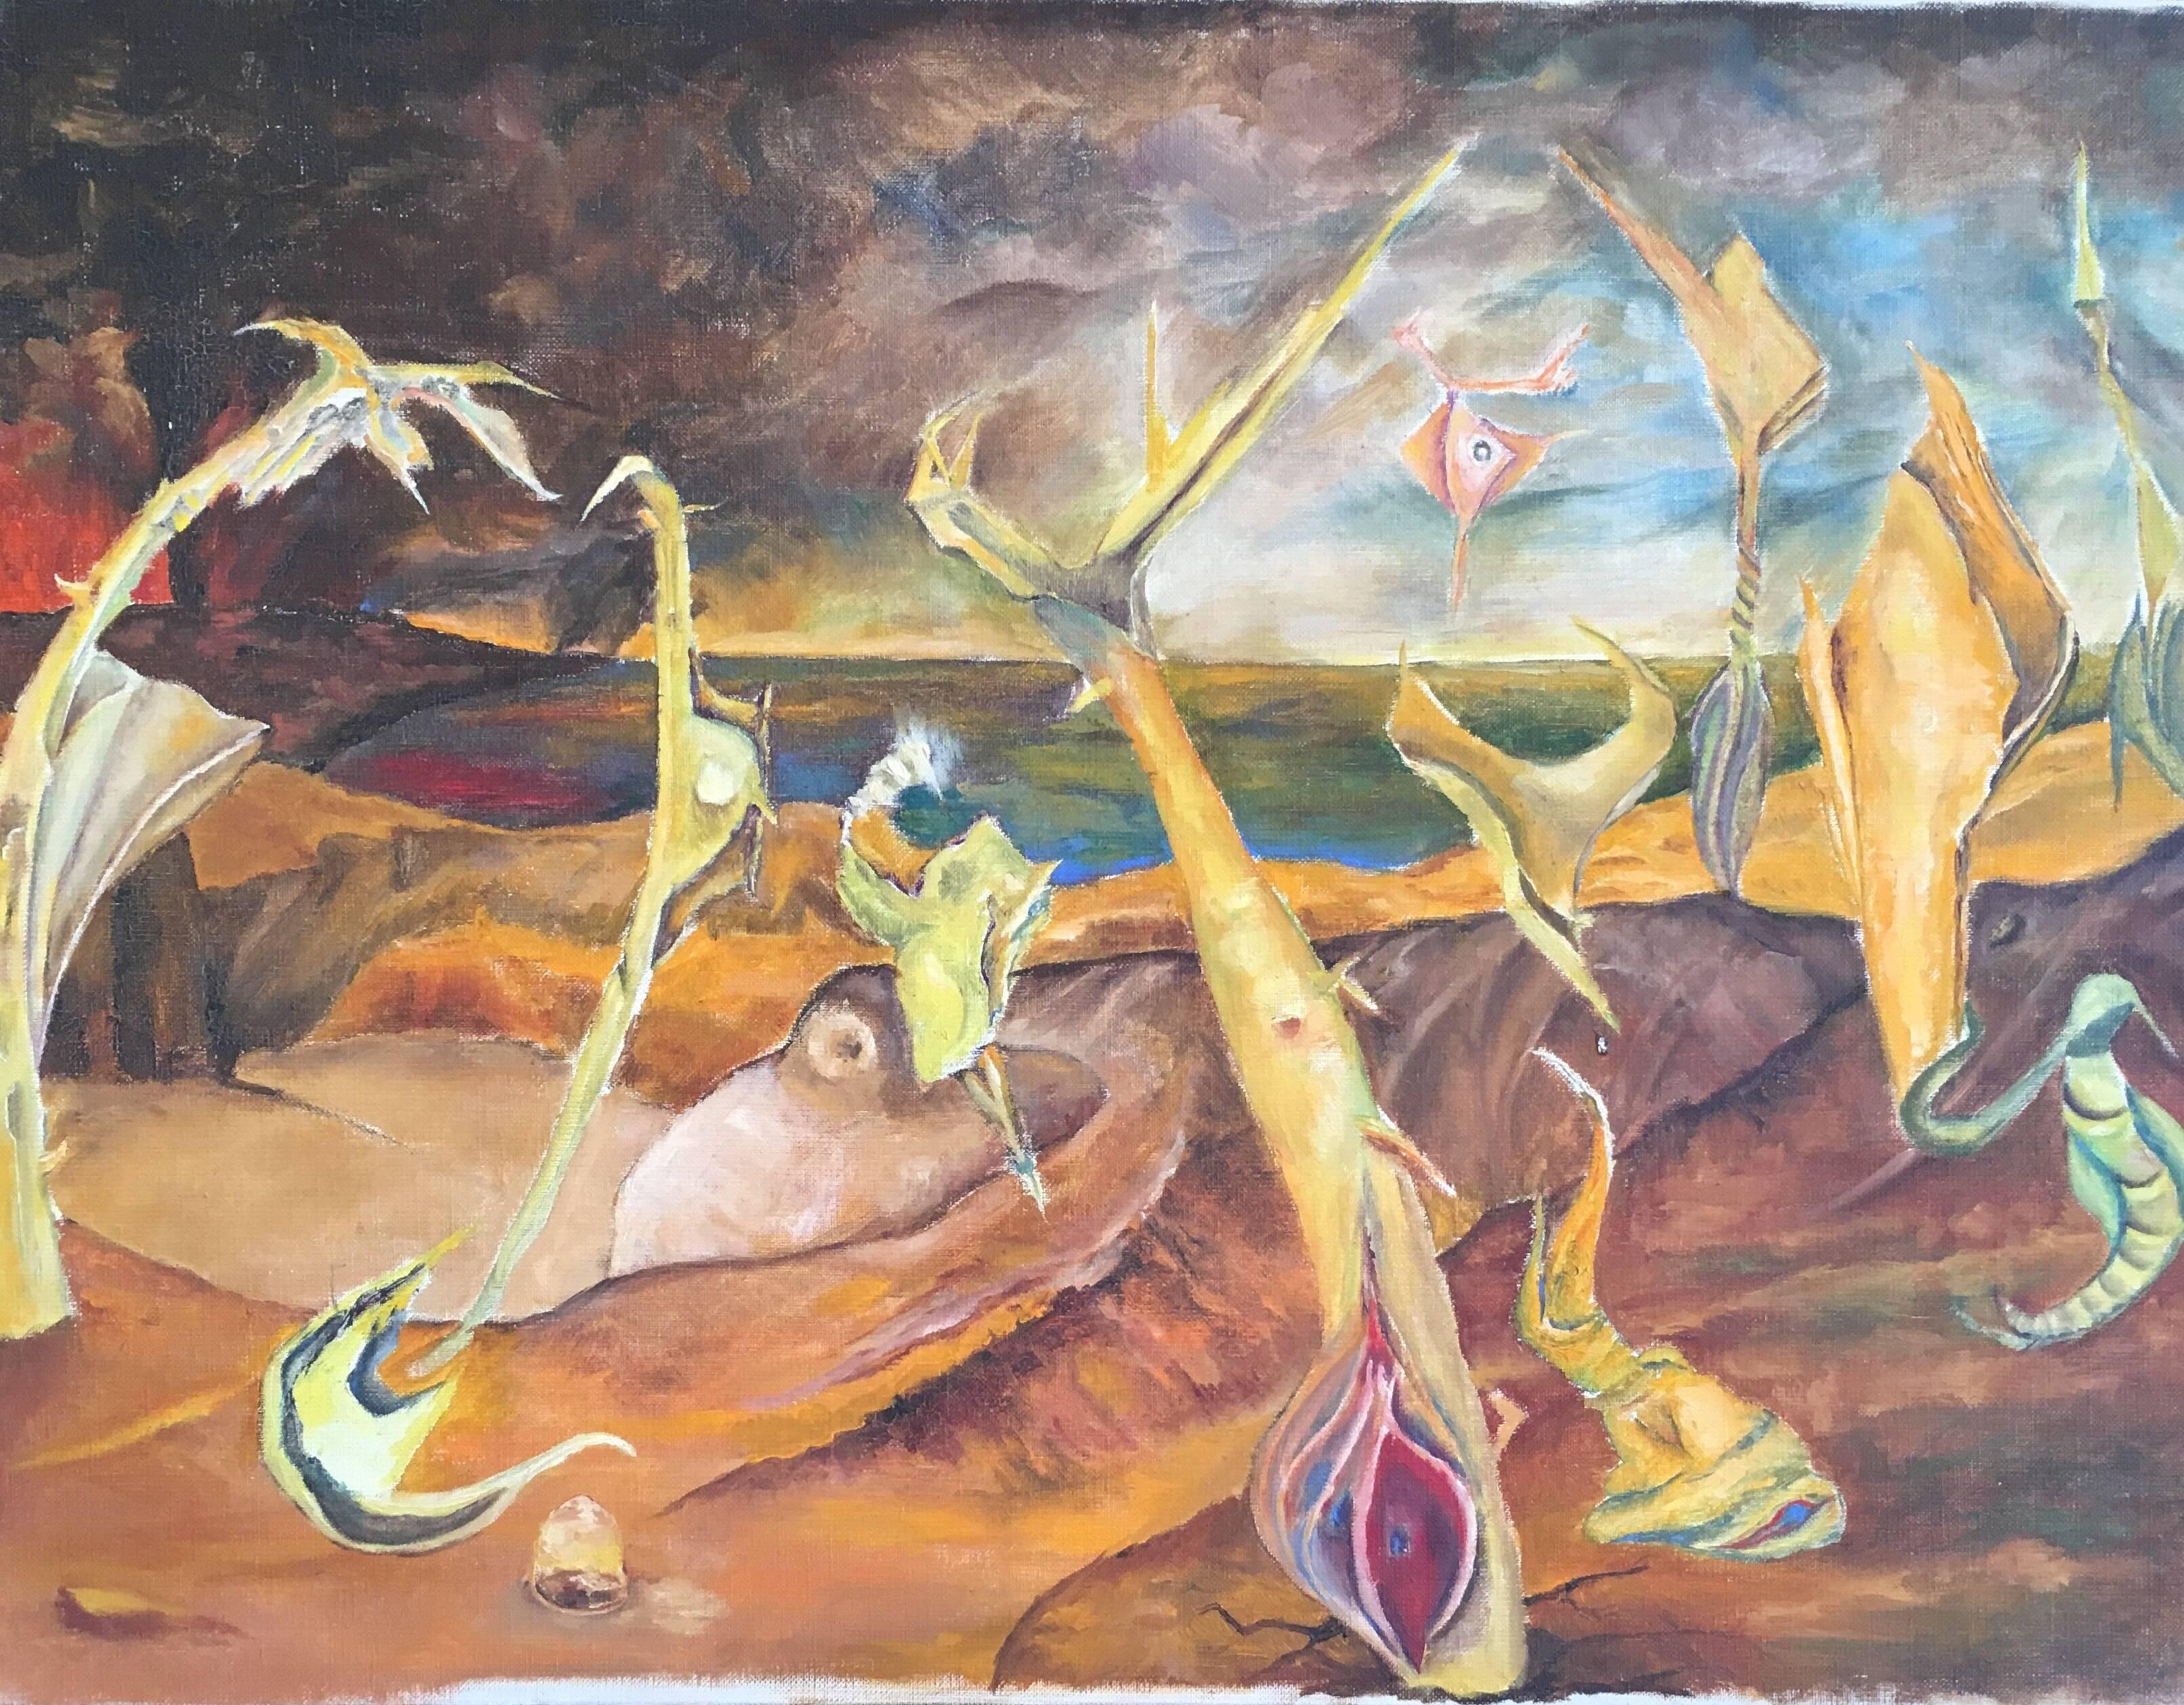 Mid 20th century French Surrealist Oil Painting